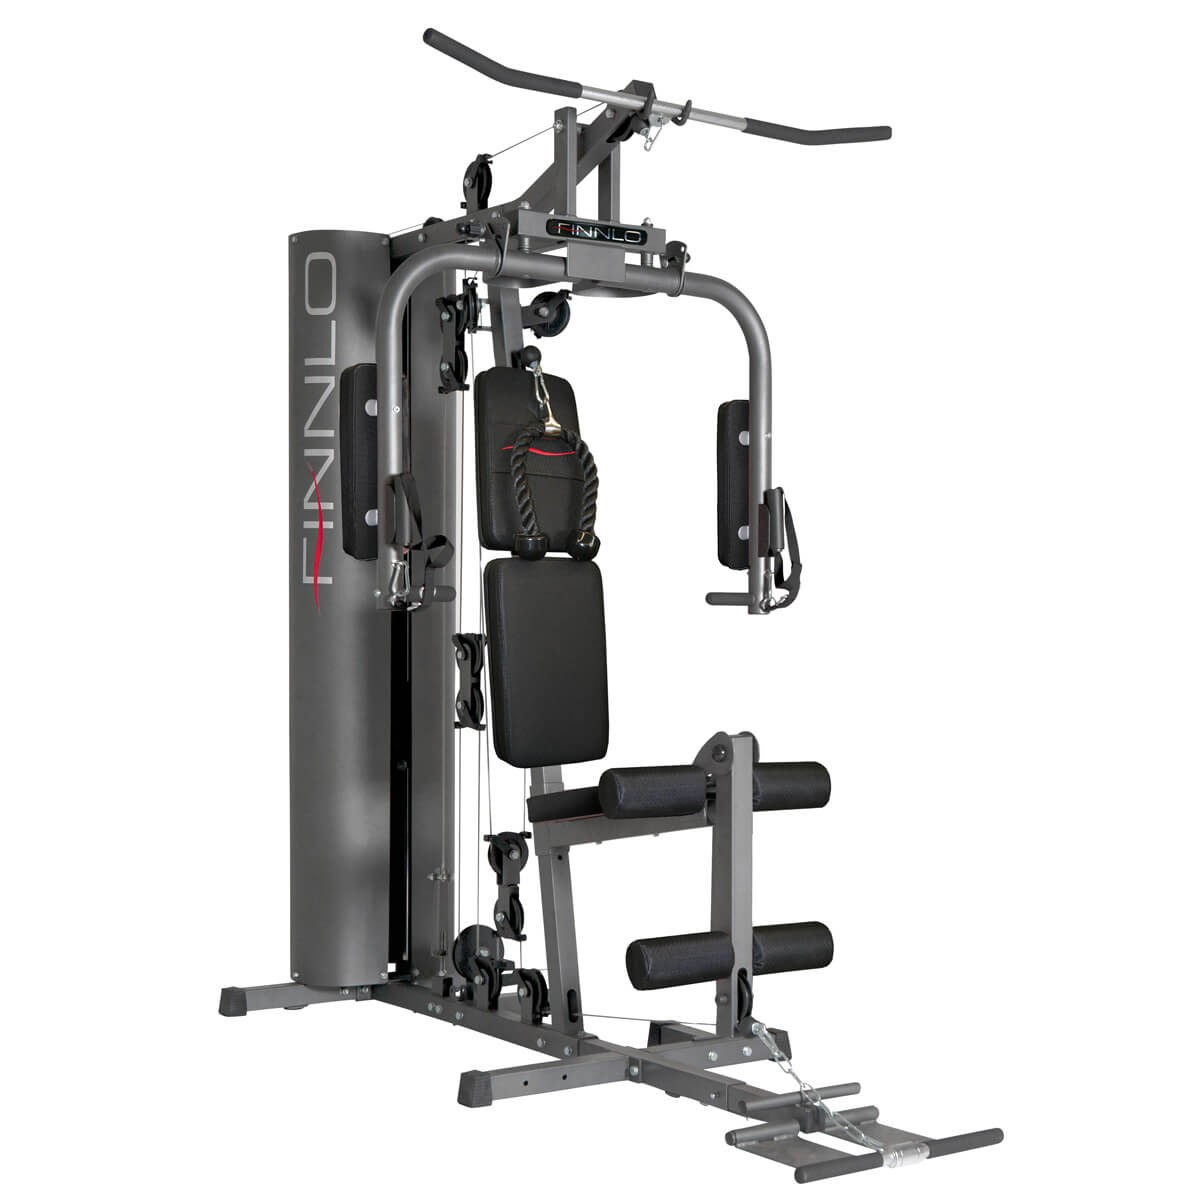 FINNLO multi-gym station Autark 600 | buy now